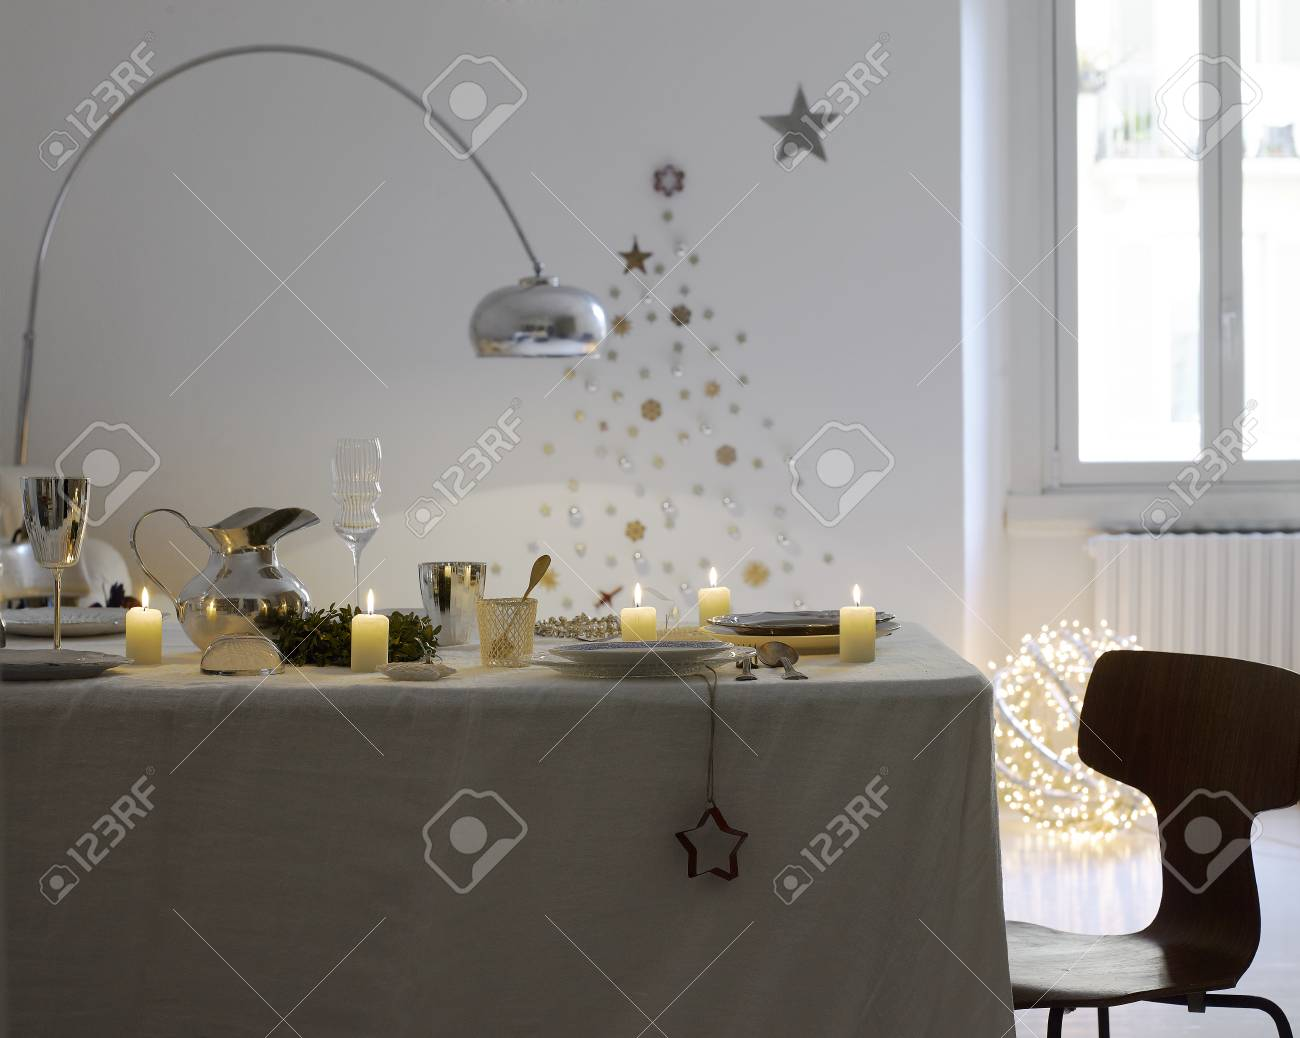 Dining Table Set Up For Christmas Season Stock Photo Picture And Royalty Free Image Image 111414145